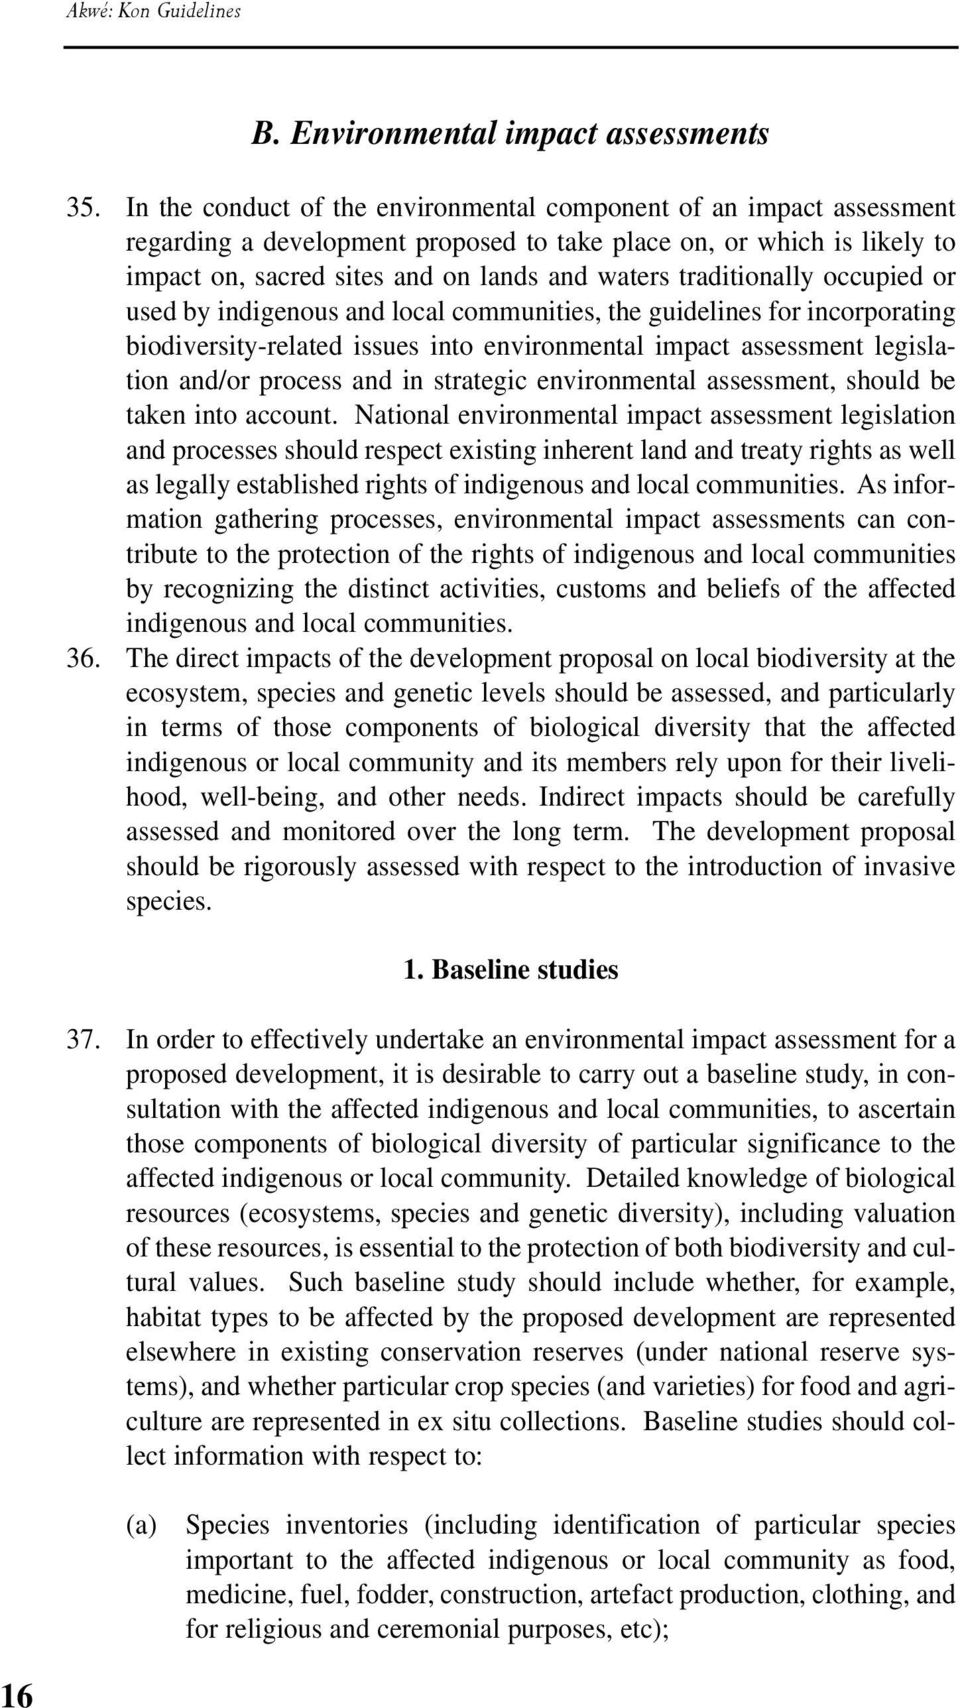 traditionally occupied or used by indigenous and local communities, the guidelines for incorporating biodiversity-related issues into environmental impact assessment legislation and/or process and in